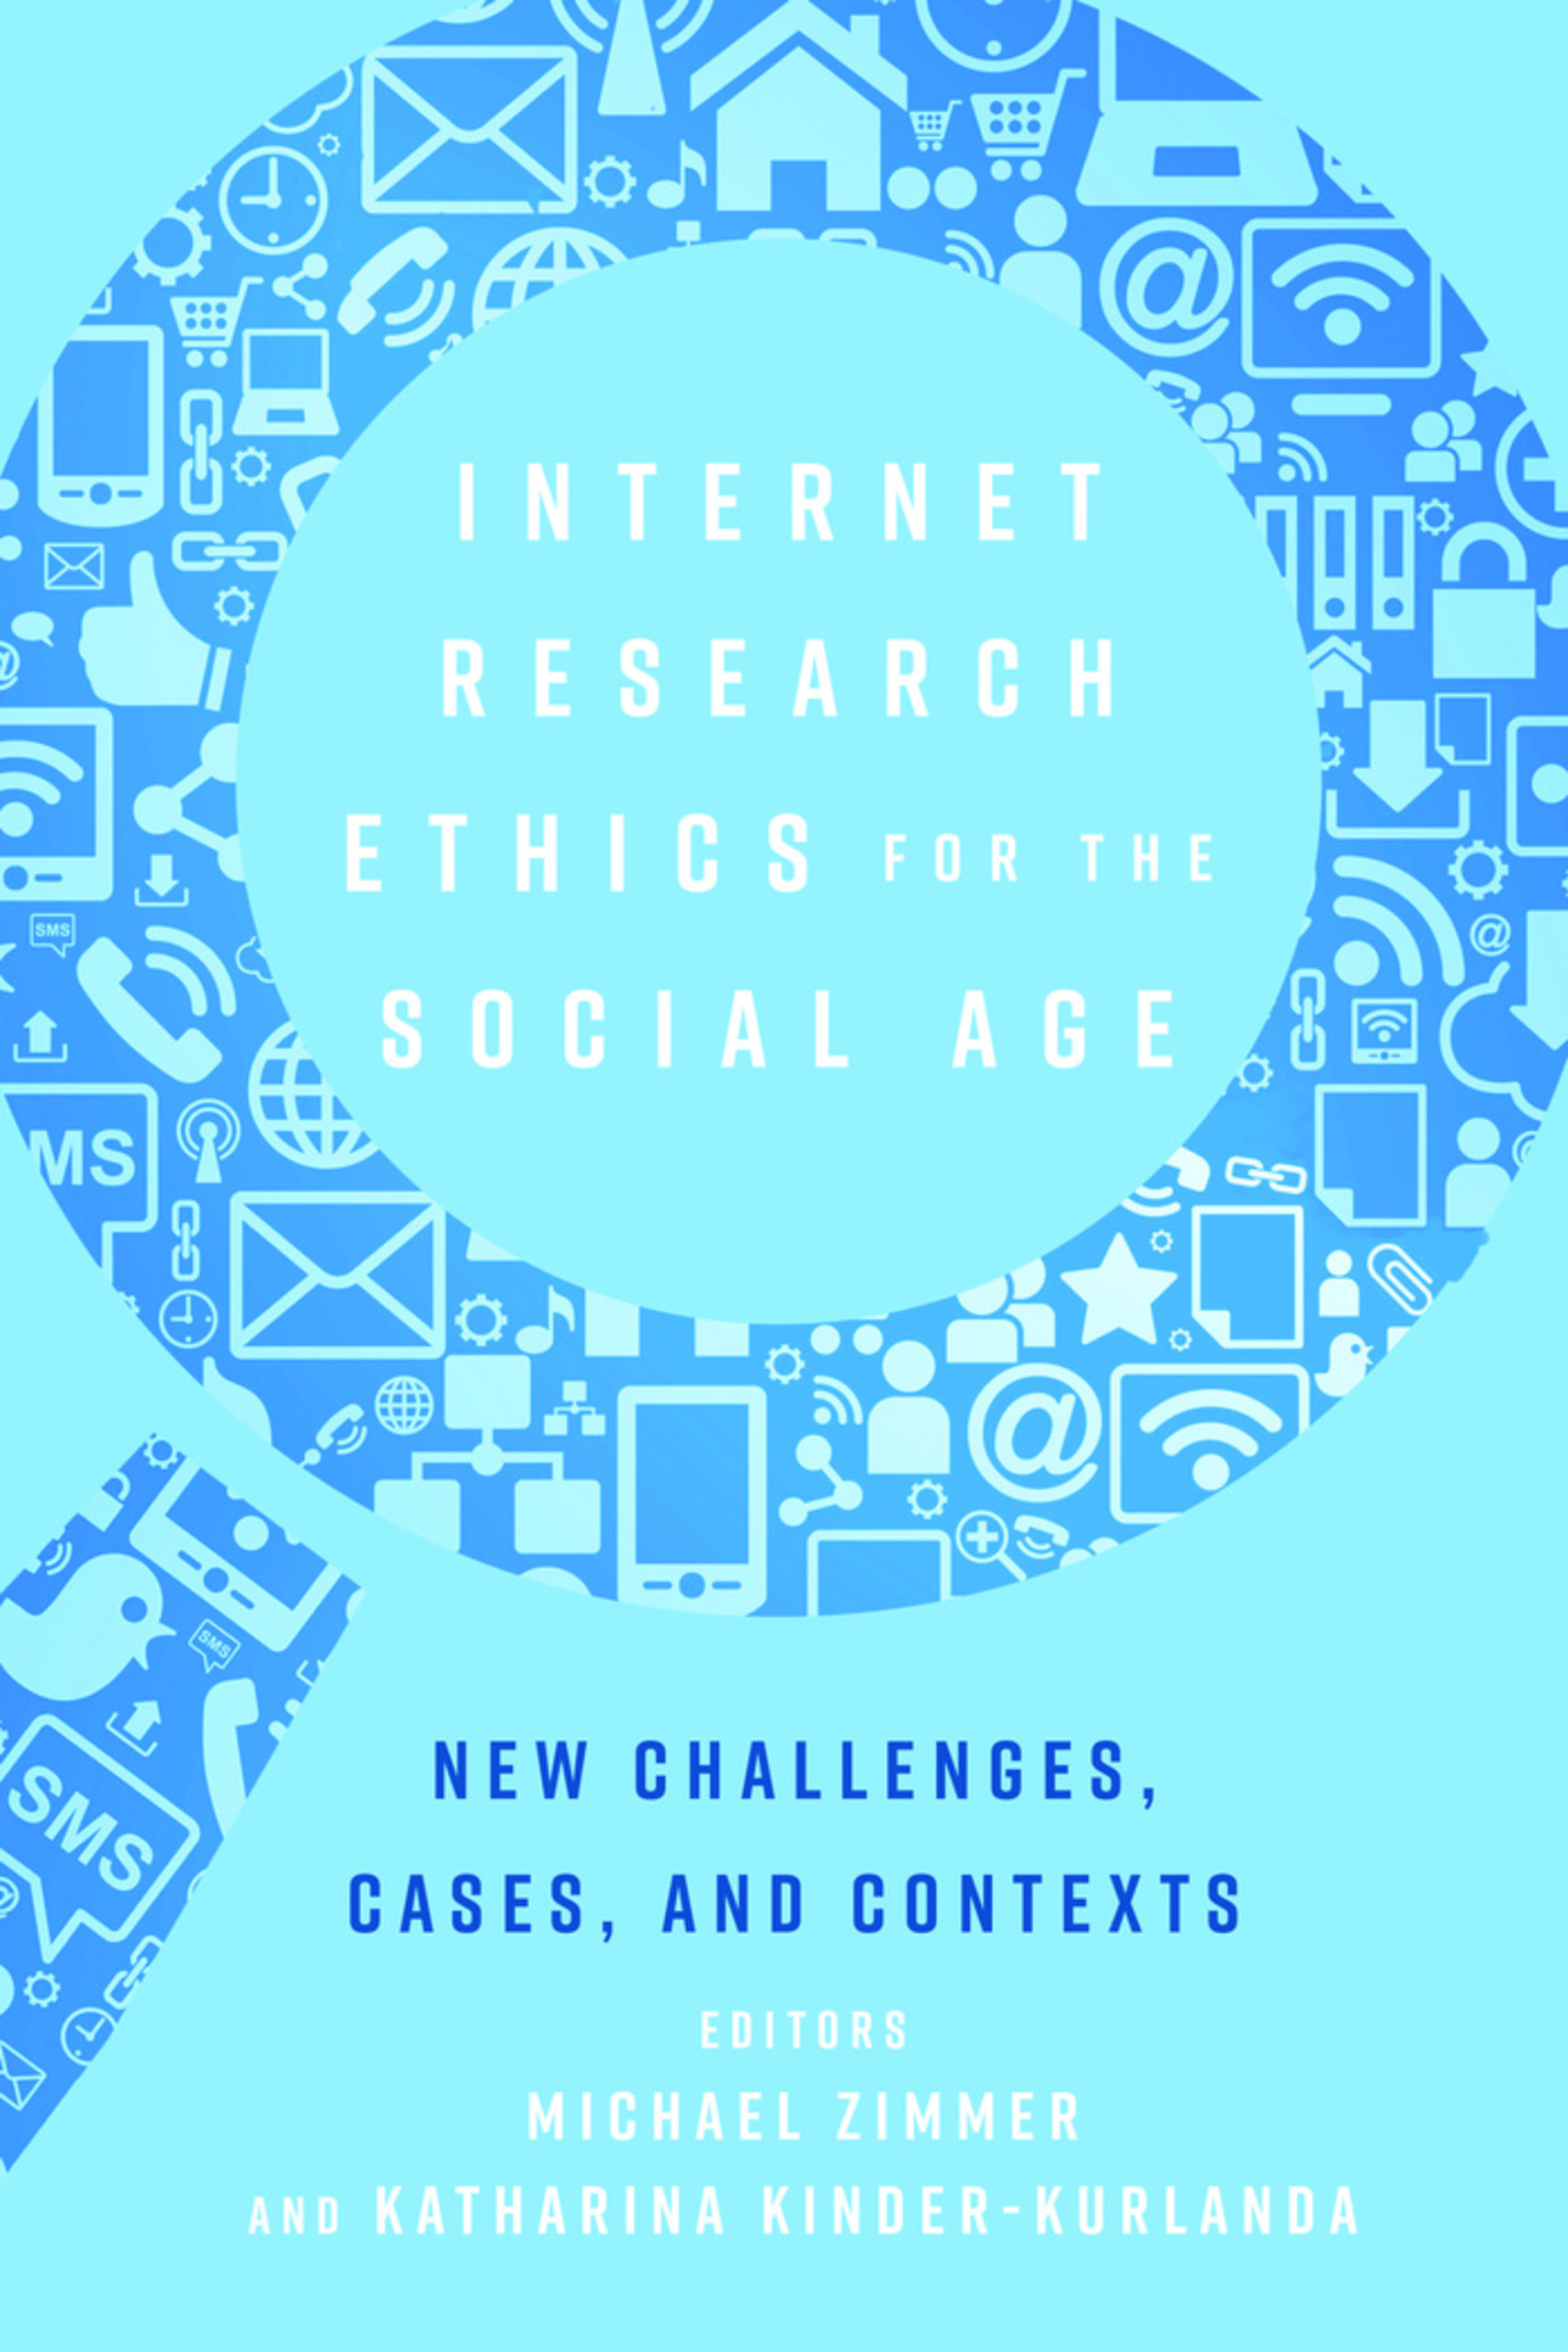 Title: Internet Research Ethics for the Social Age